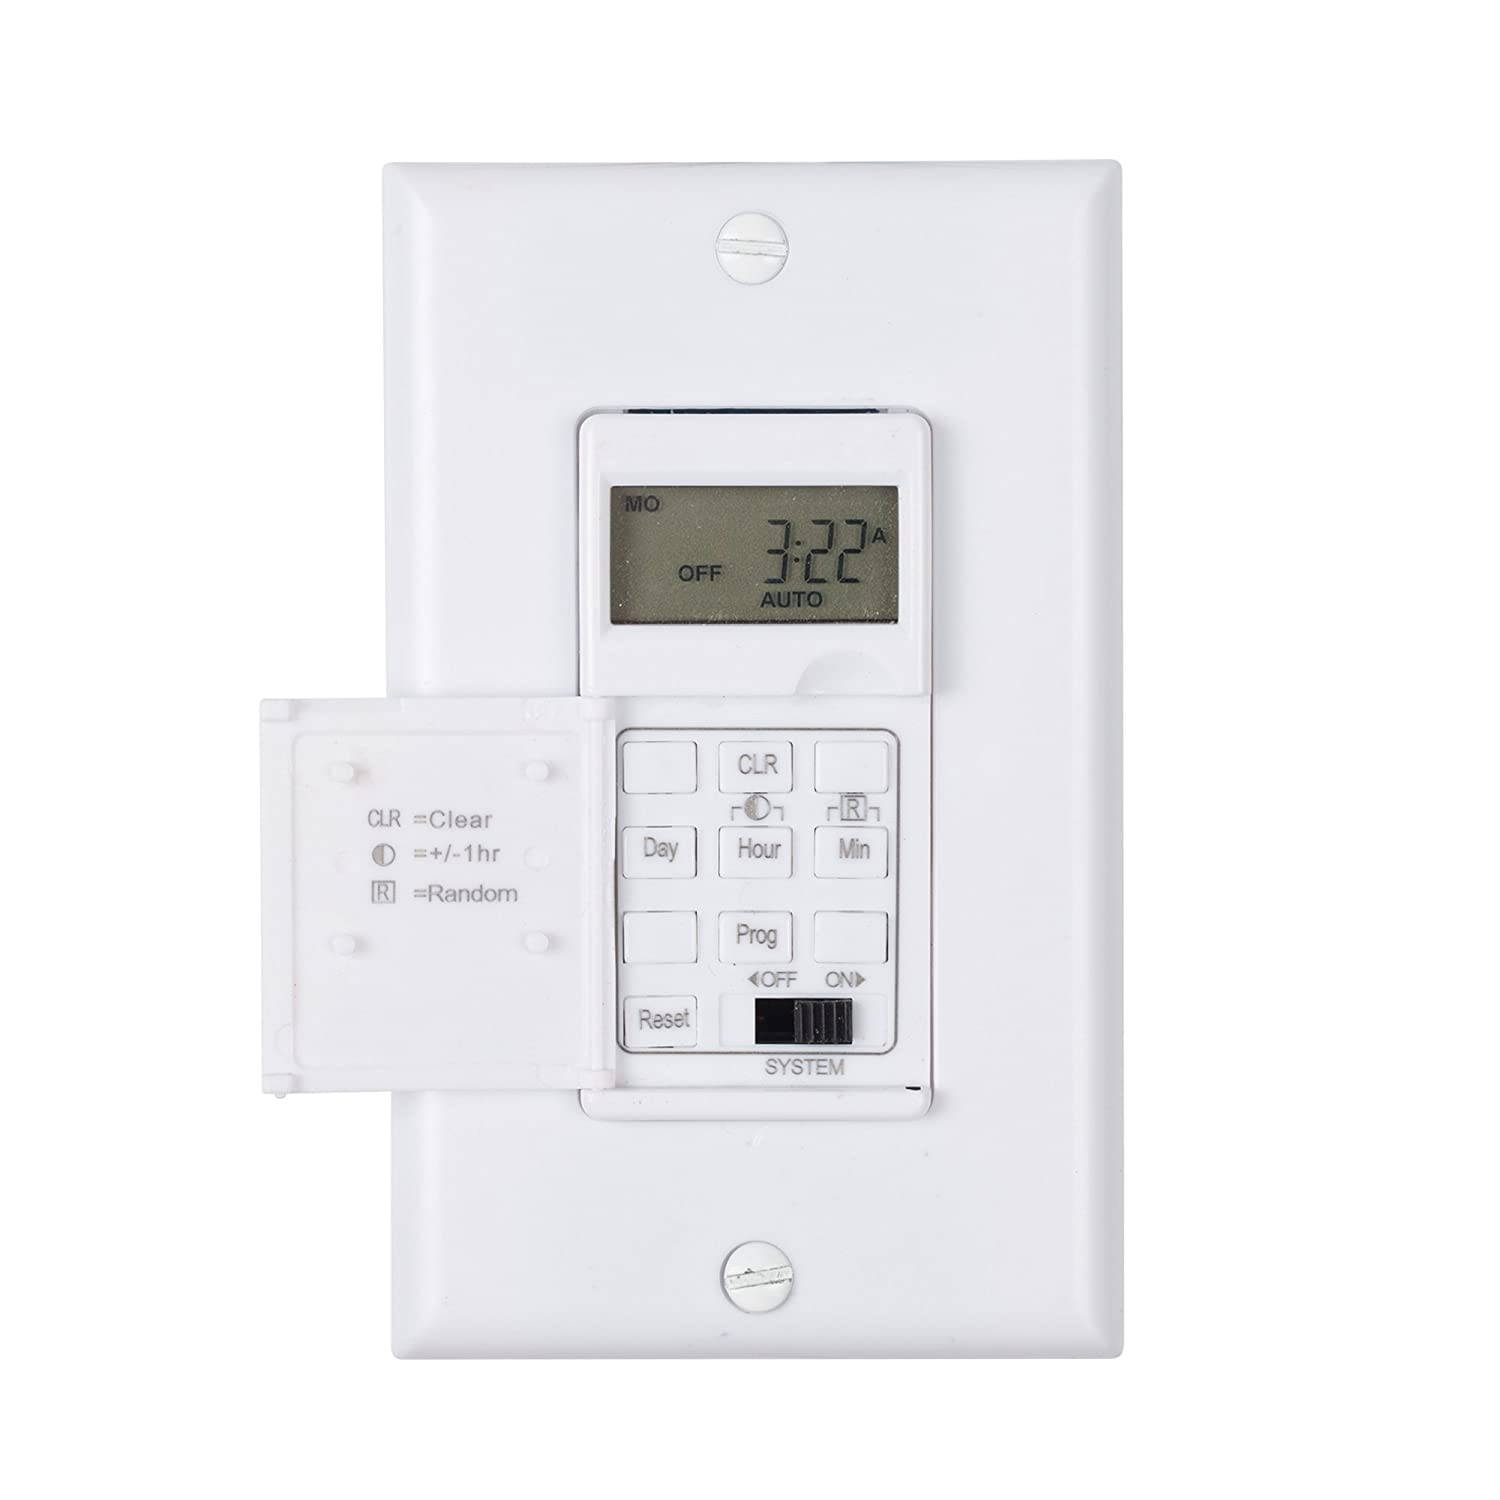 Bn Link 7 Day Programmable In Wall Timer Switch Digital